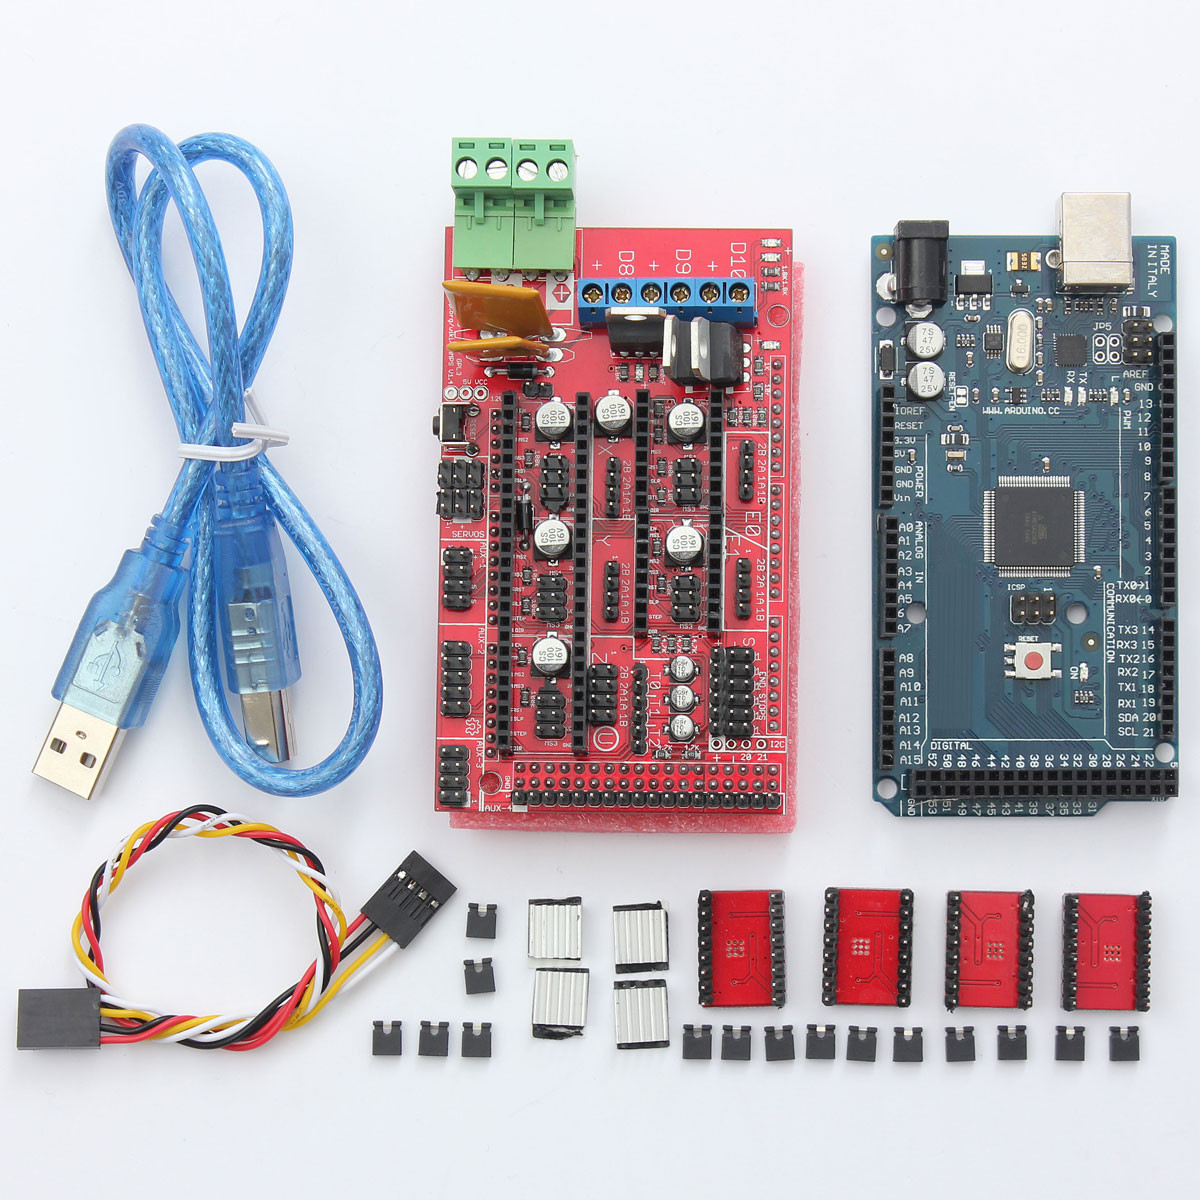 kit ramps 1 4 reprap a4988 stepper driver mega2560 pour d 39 imprimante 3d arduino ebay. Black Bedroom Furniture Sets. Home Design Ideas